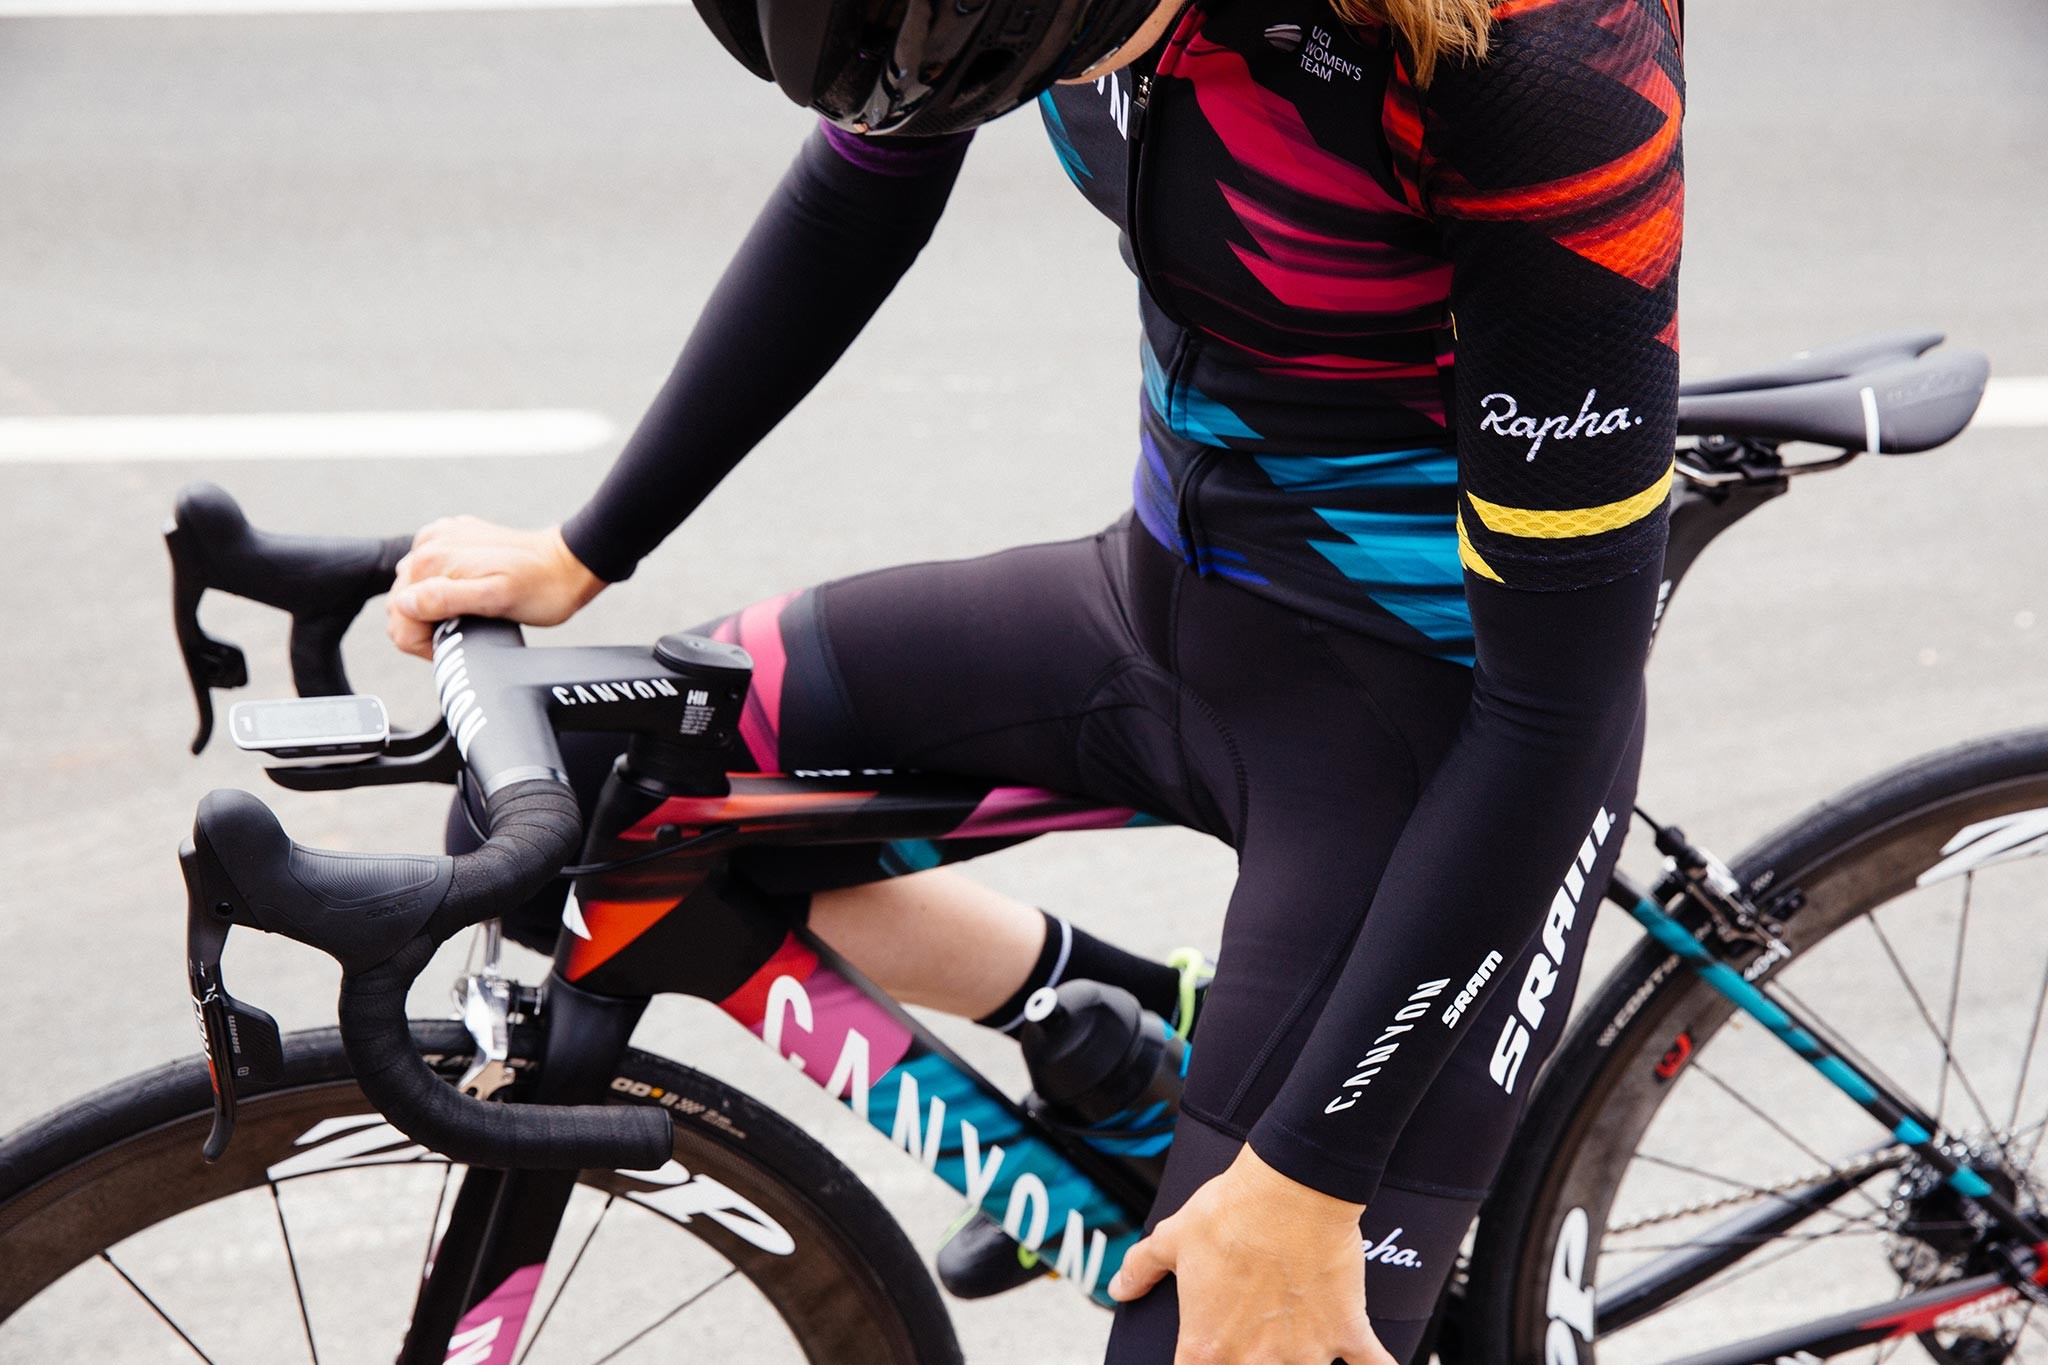 Canyon–SRAM team kit